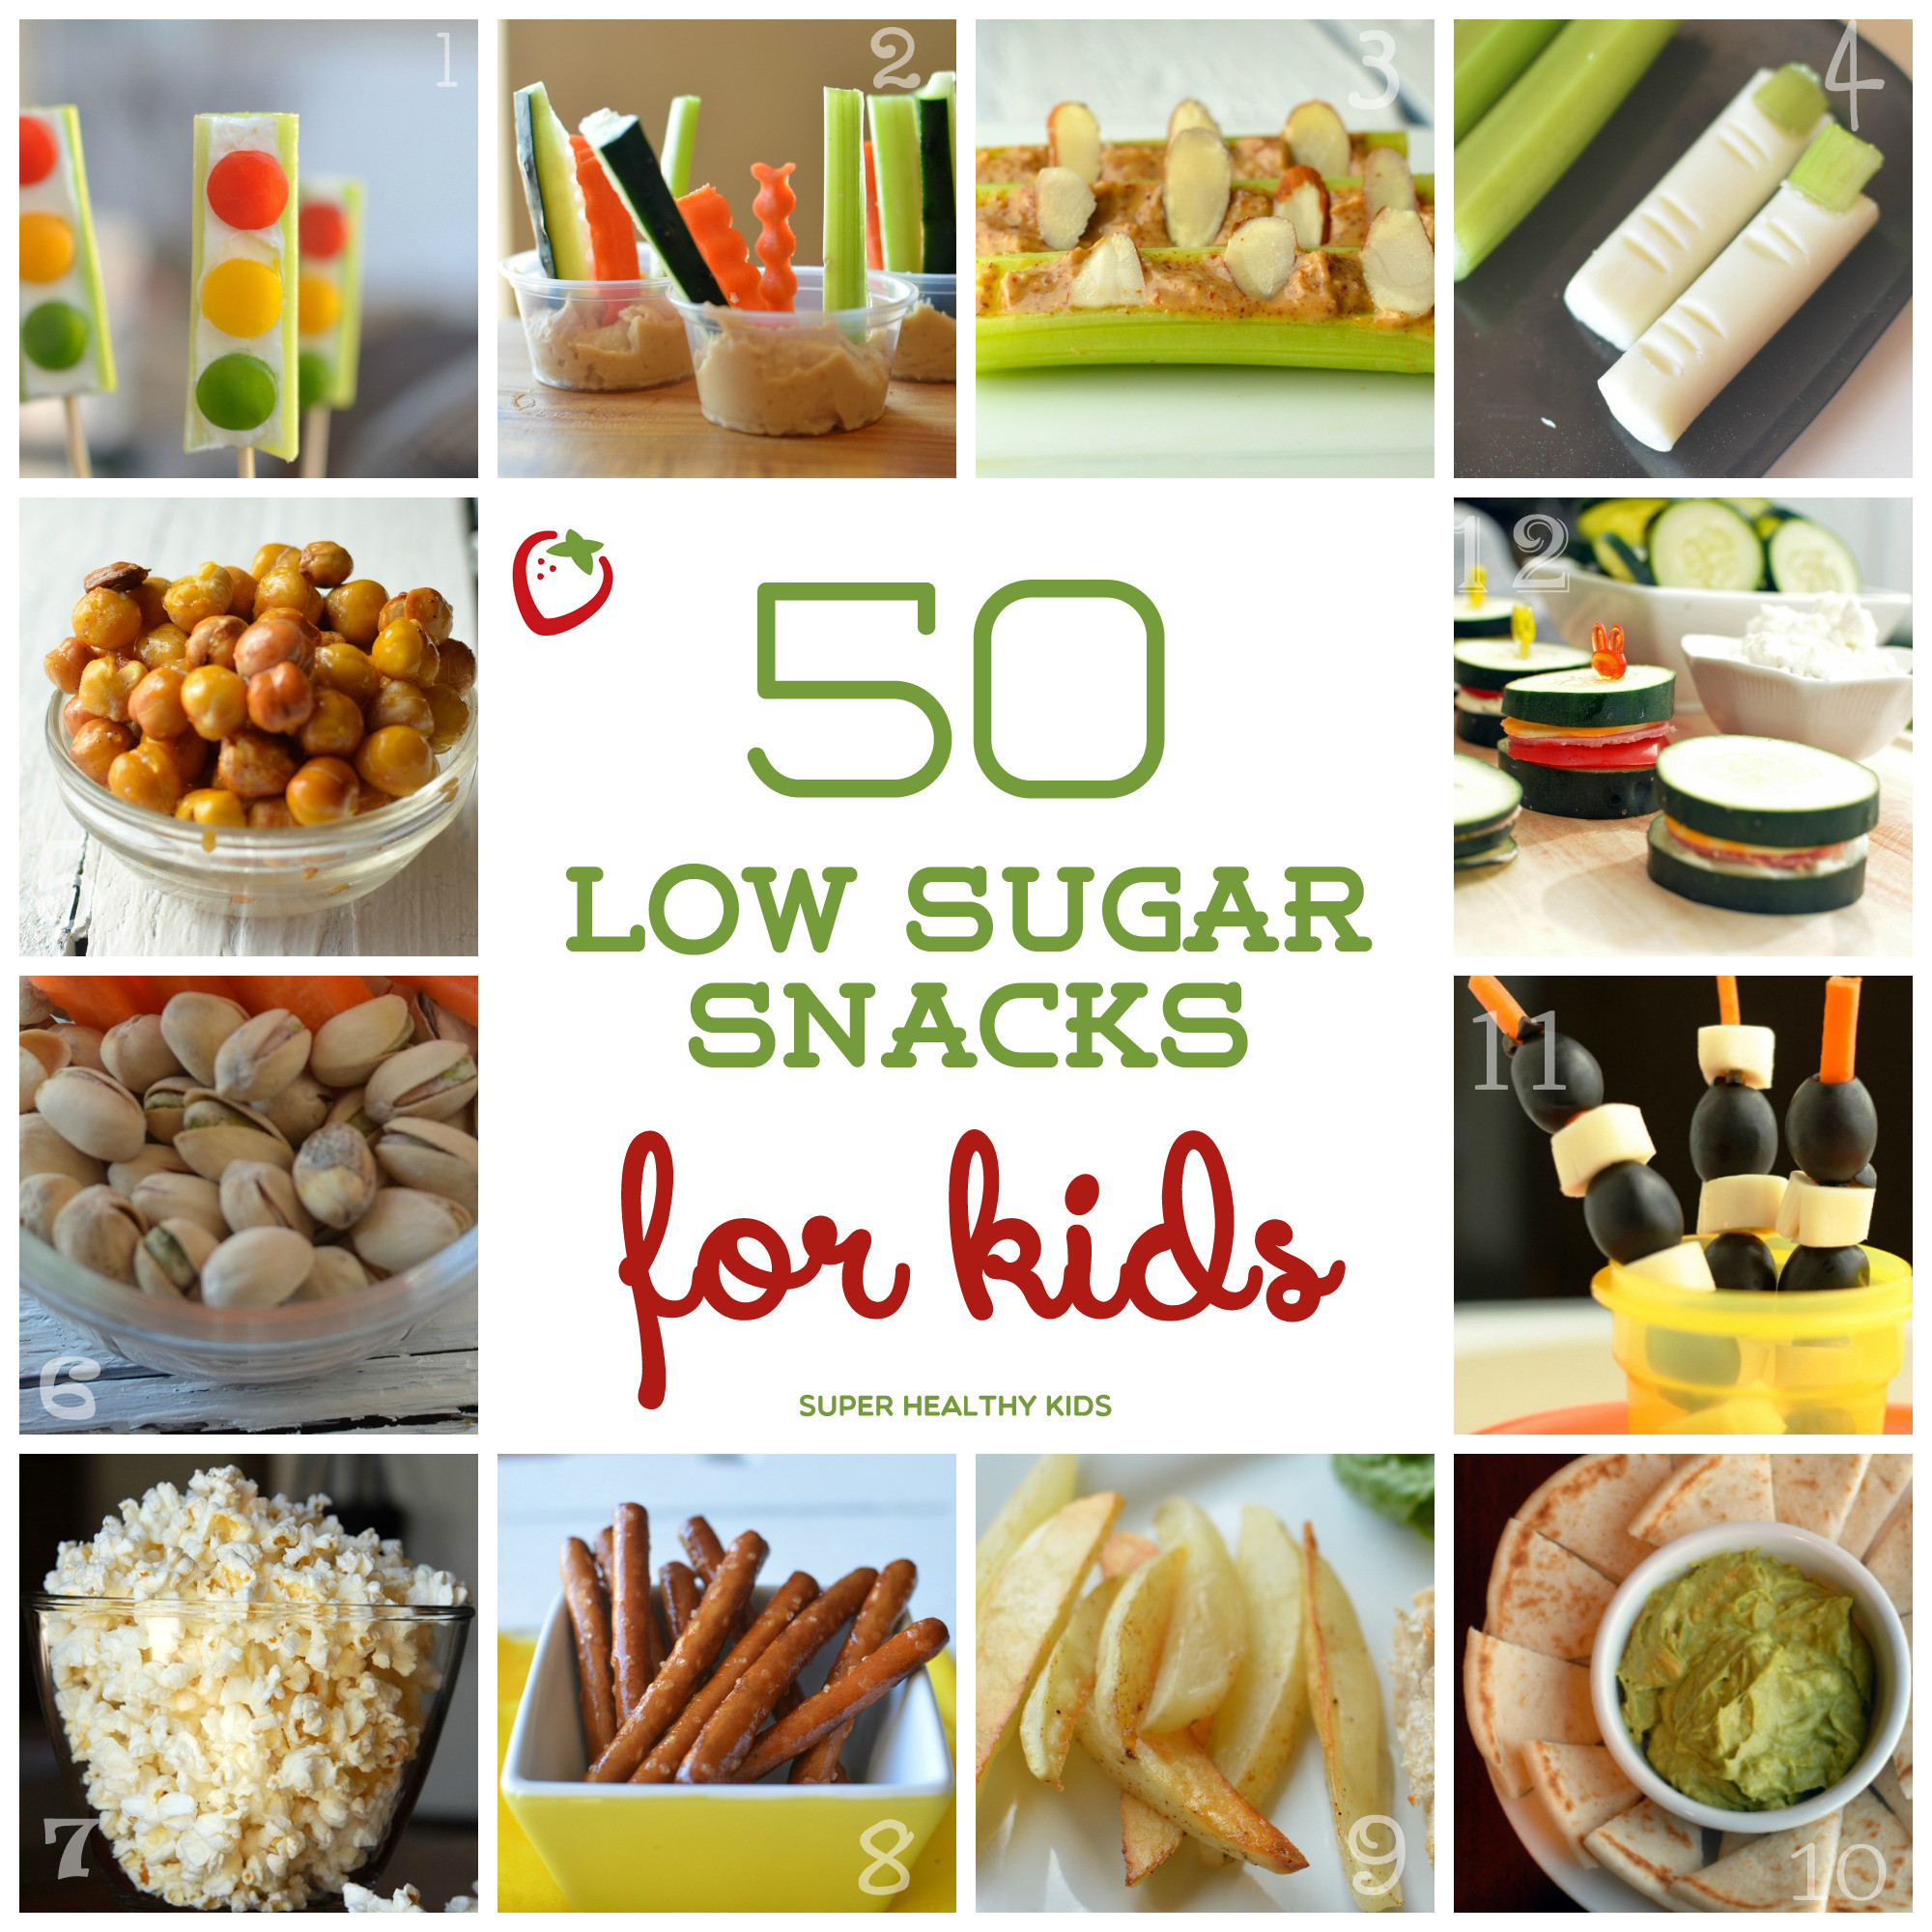 Childrens Healthy Snacks  50 Low Sugar Snacks for Kids